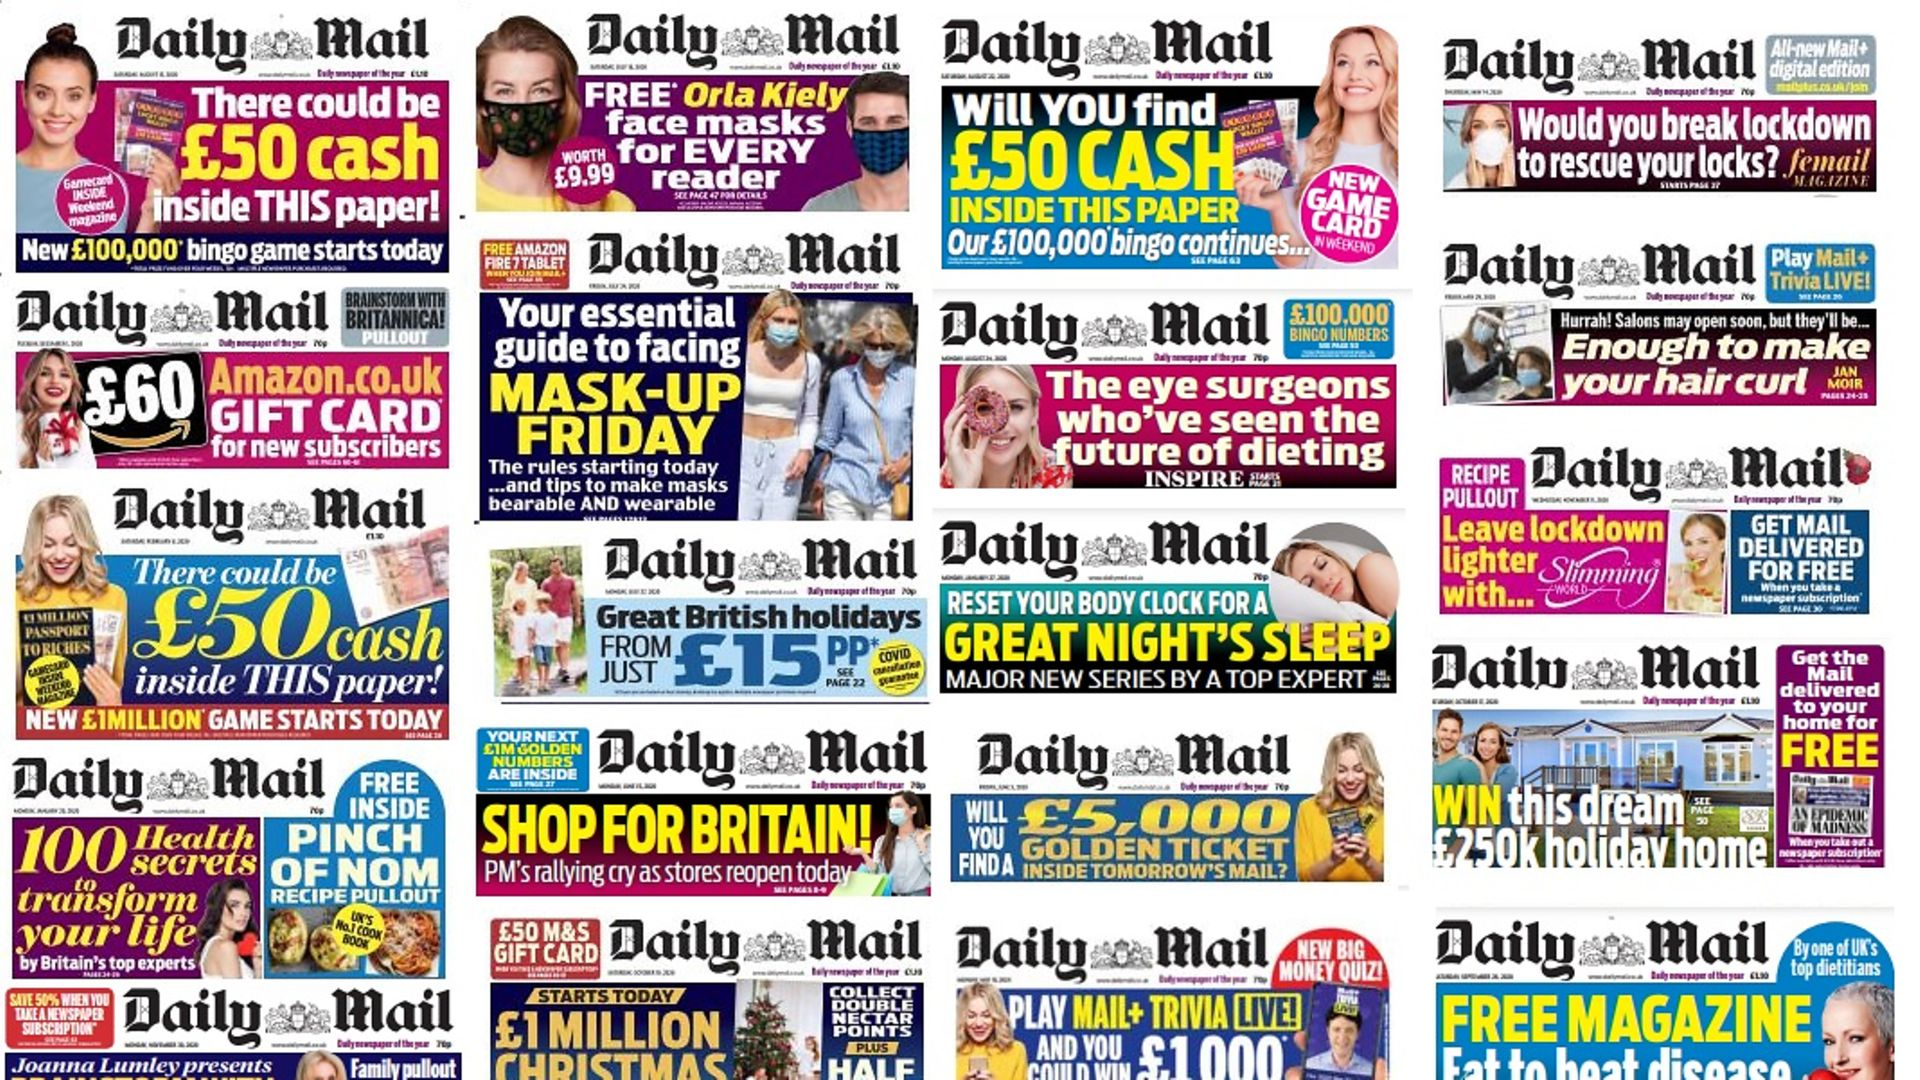 A selection of front page blurbs from the Daily Mail featuring exclusively white people - Credit: The New European